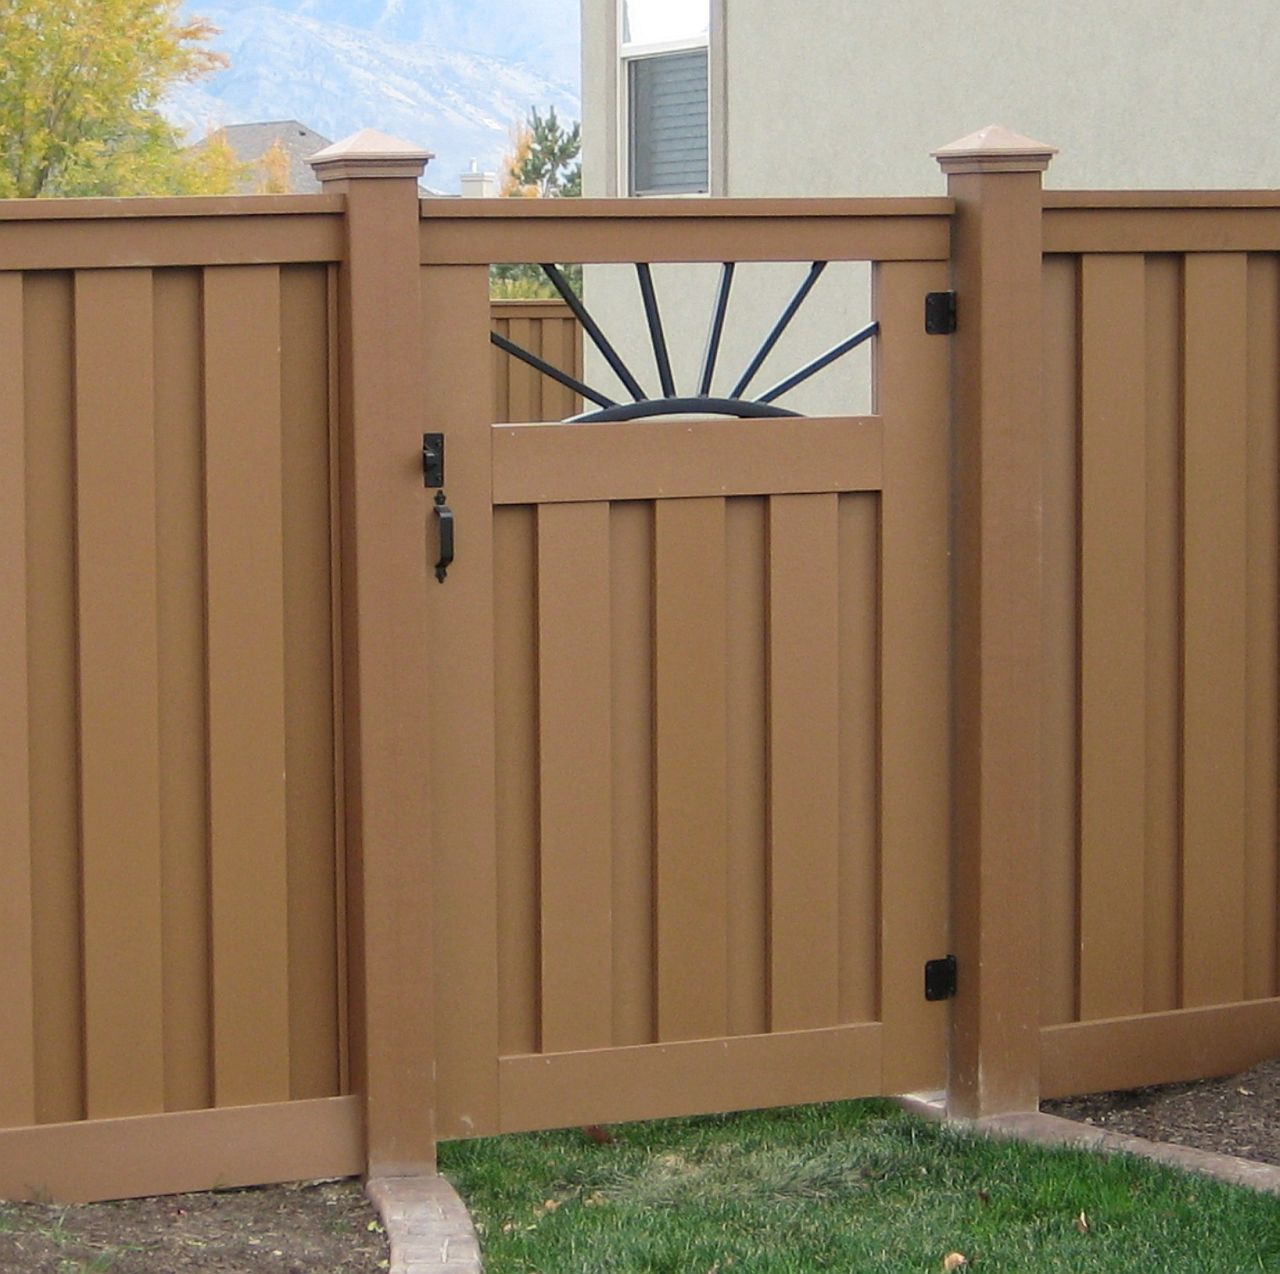 Fence Gate Design Ideas: Low Maintenance Fencing, Naturally